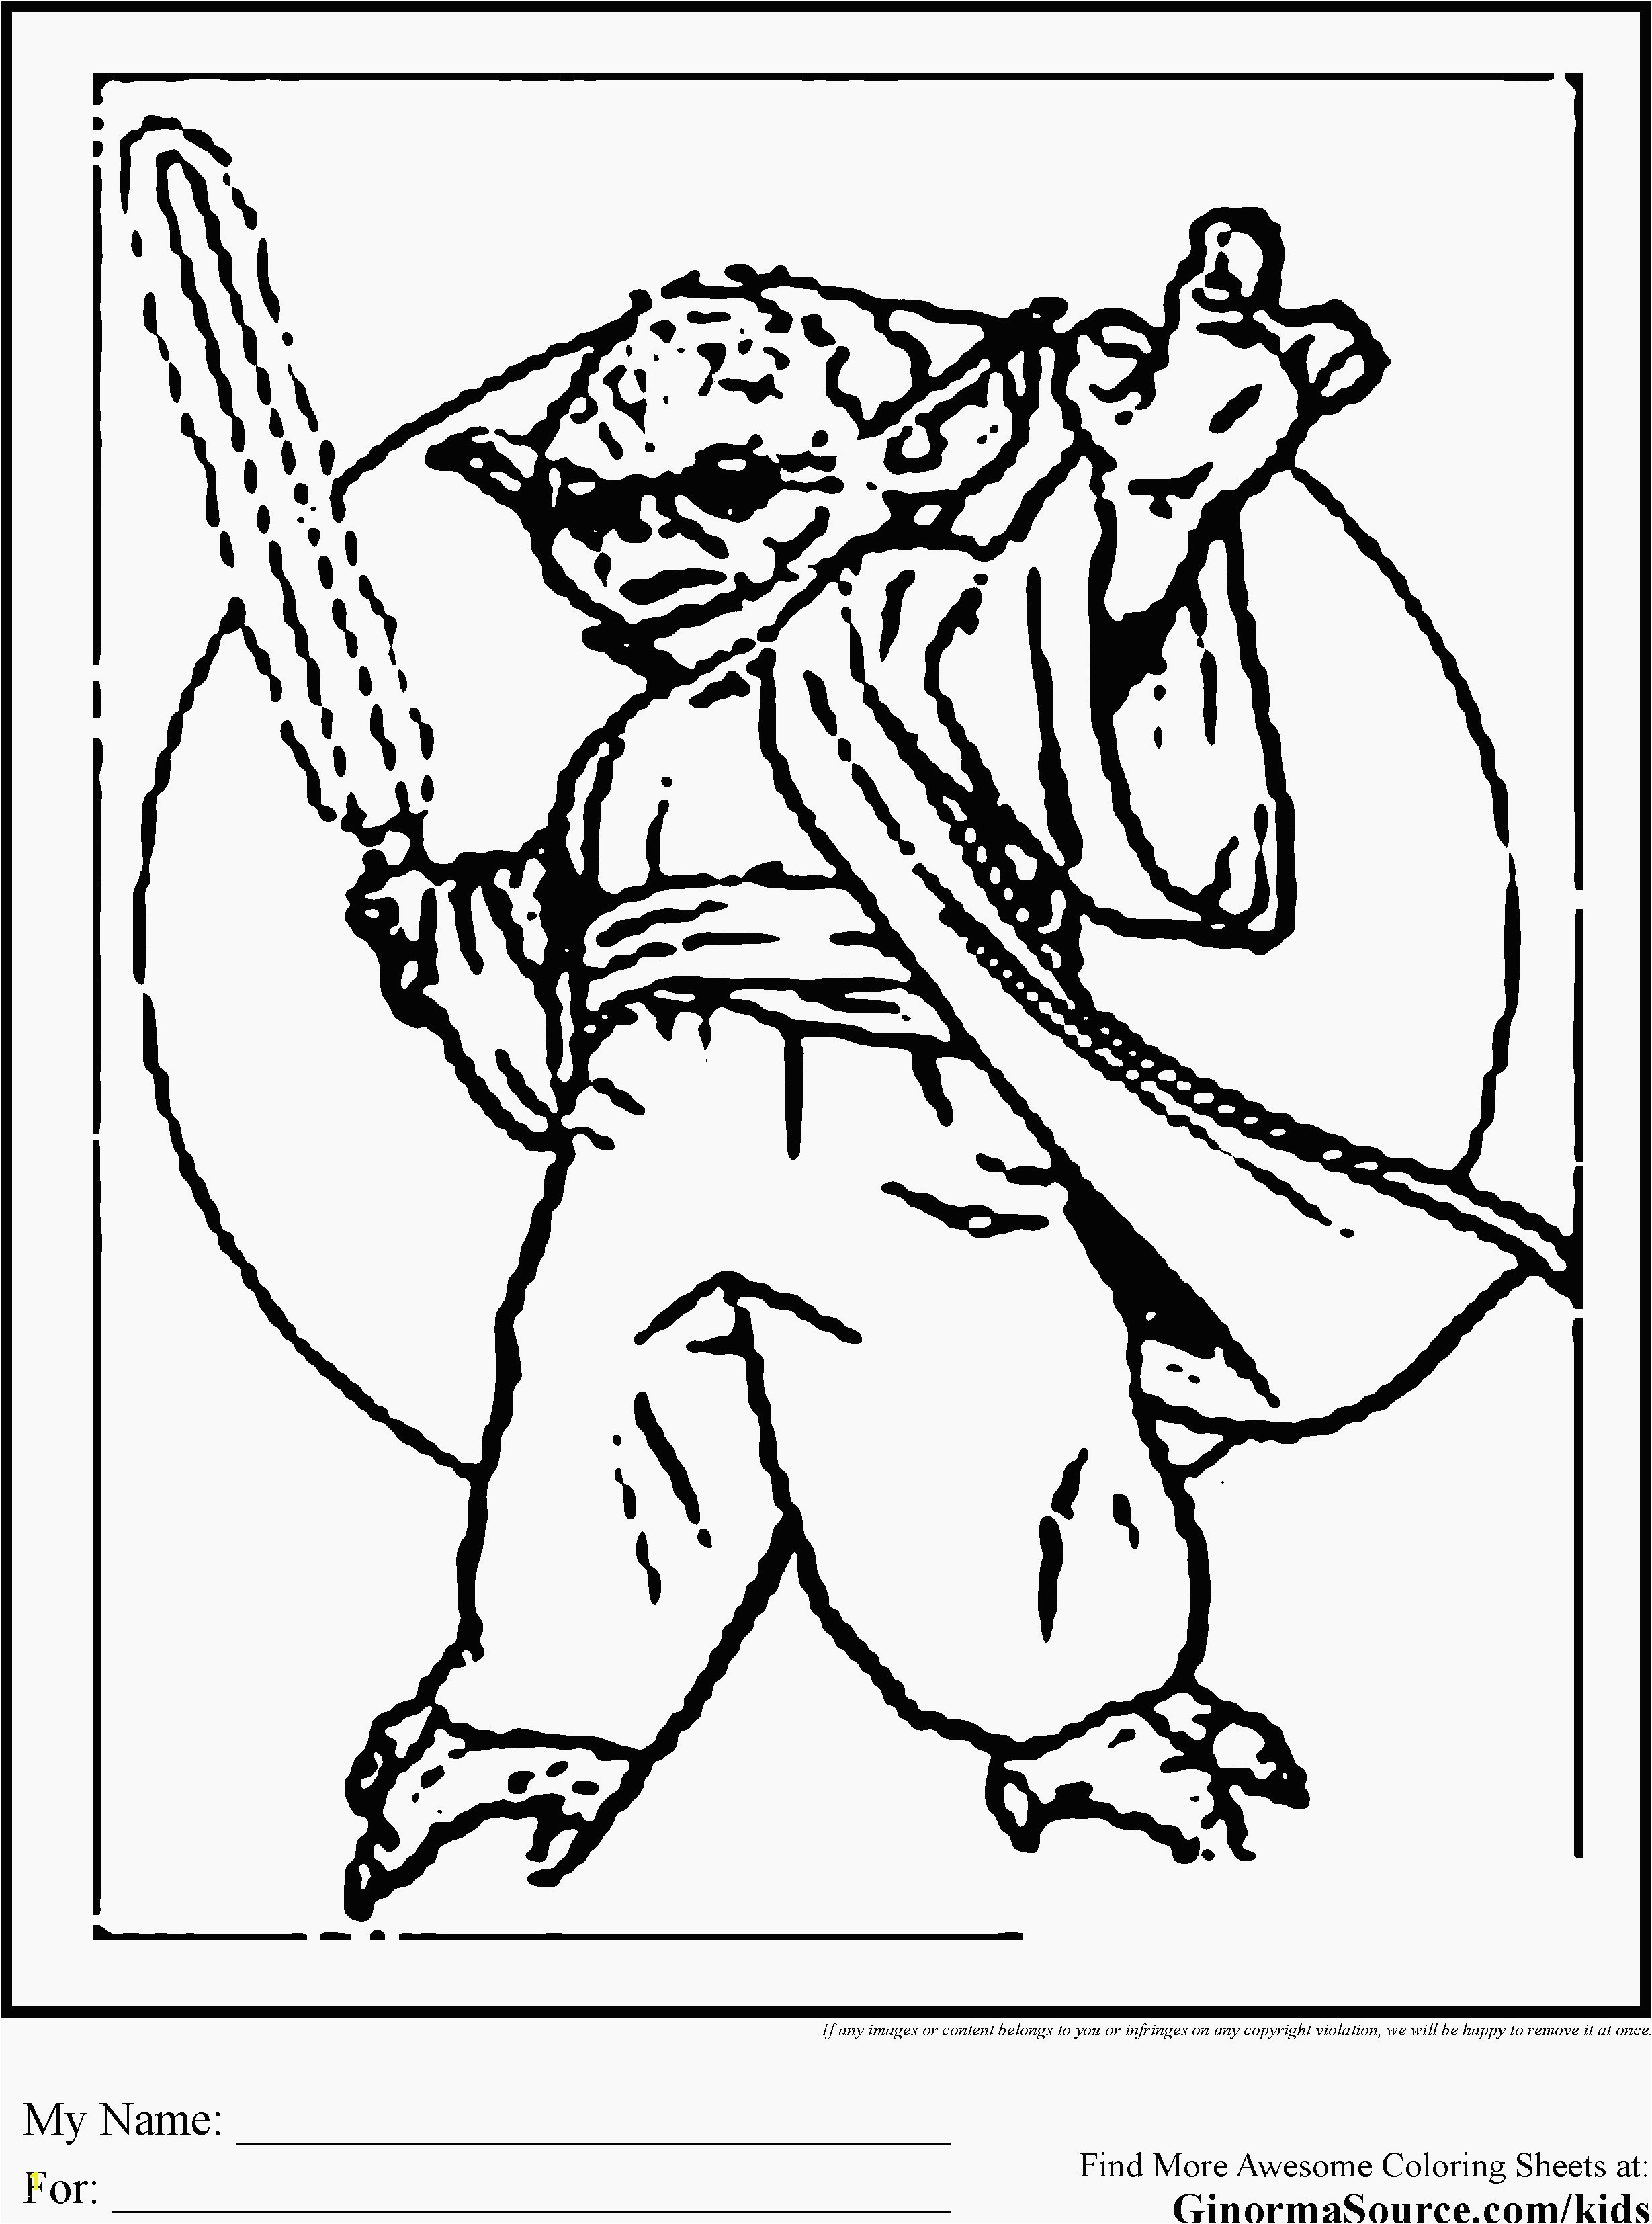 Star Wars Color Pages Luxury Star Wars Printable Coloring Pages Coloring Pages